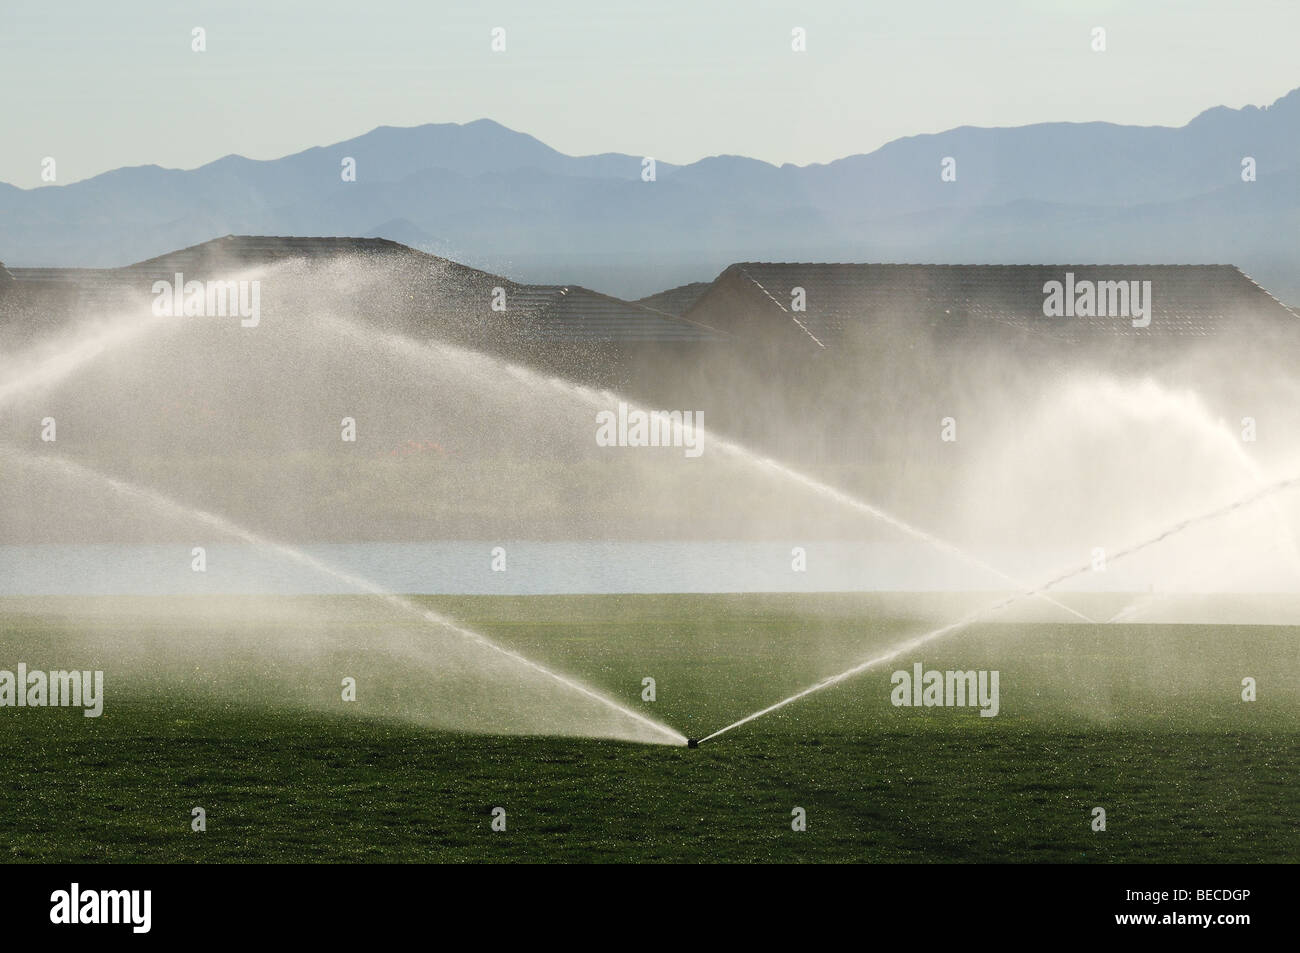 Reclaimed water is used to irrigate a golf course in the Sonoran Desert in Green Valley, Arizona, USA. - Stock Image